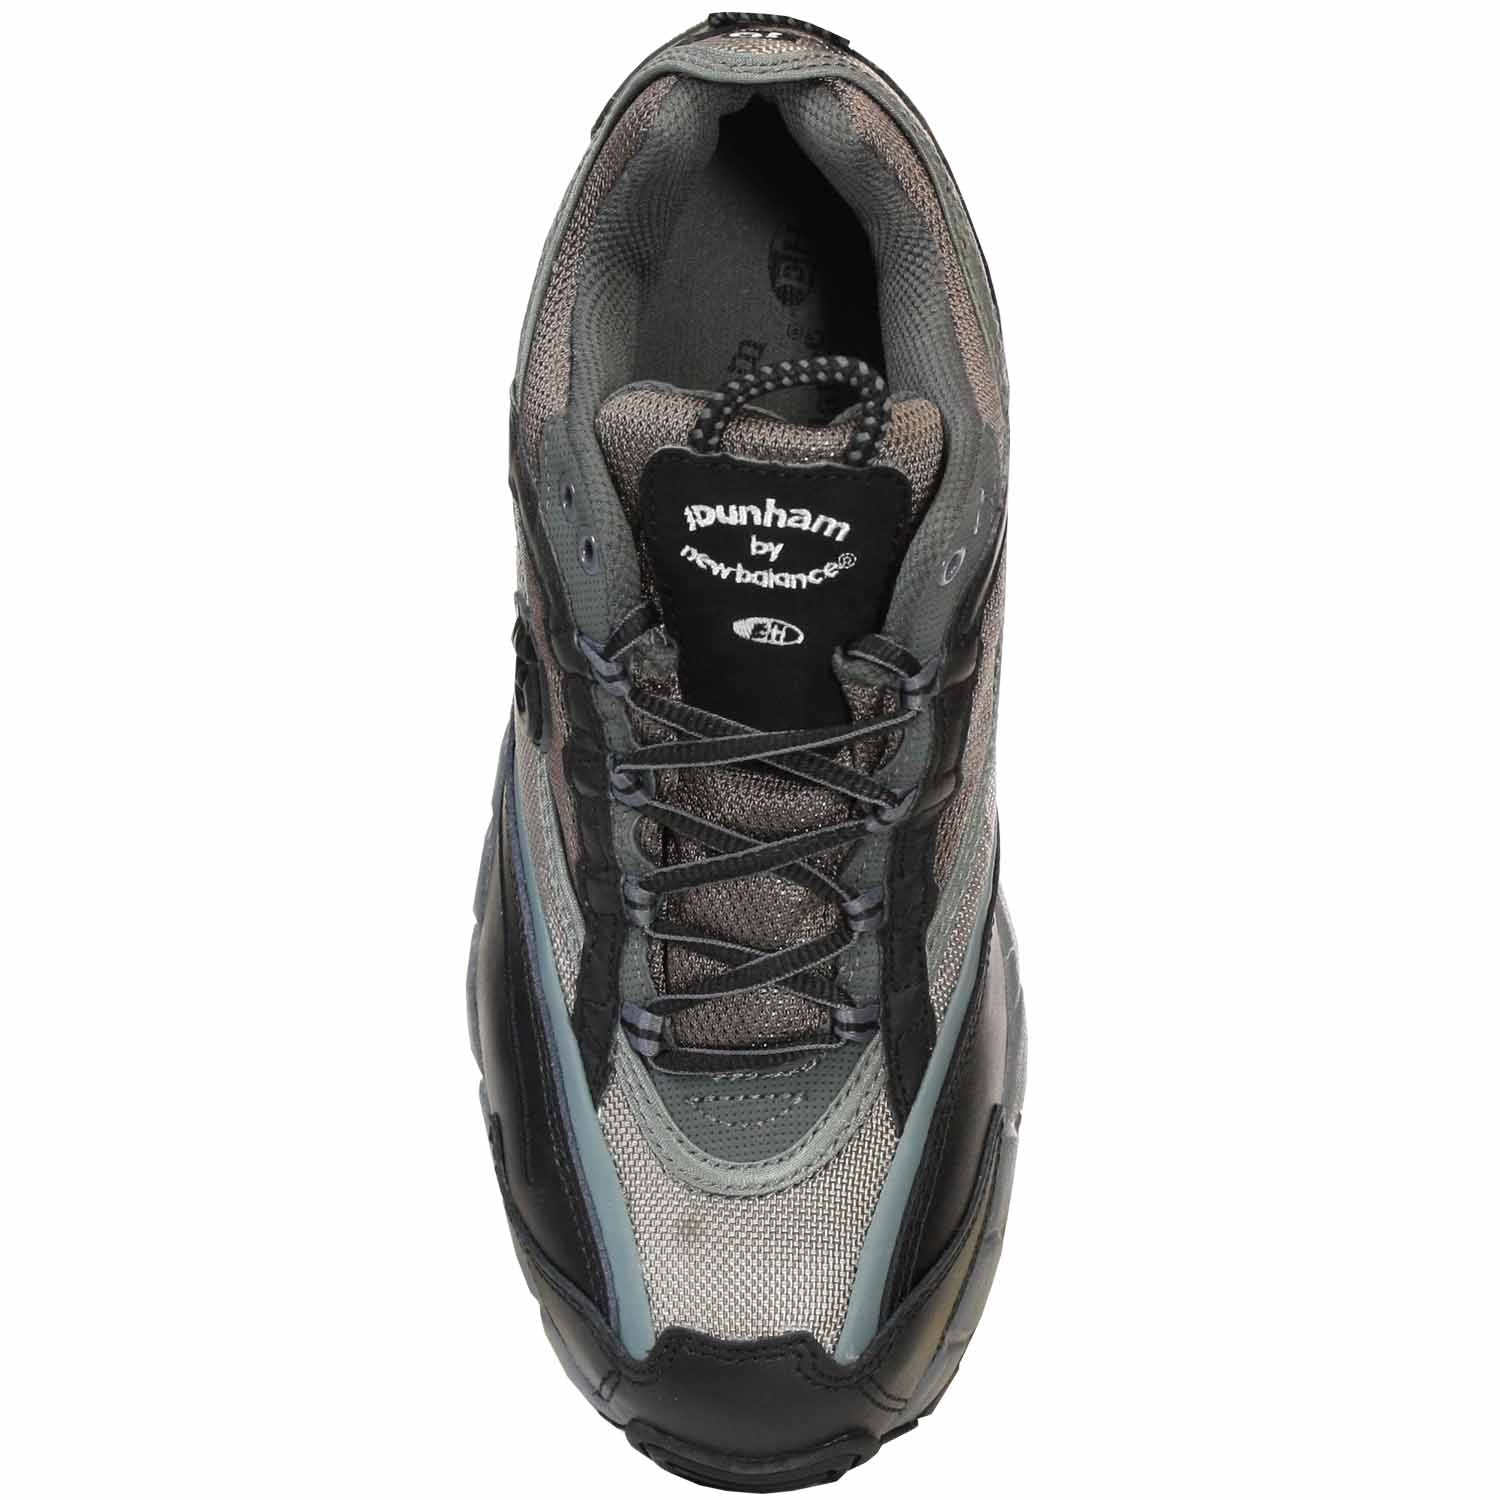 dunham by new balance men's 8702 steel toe eh athletic shoes